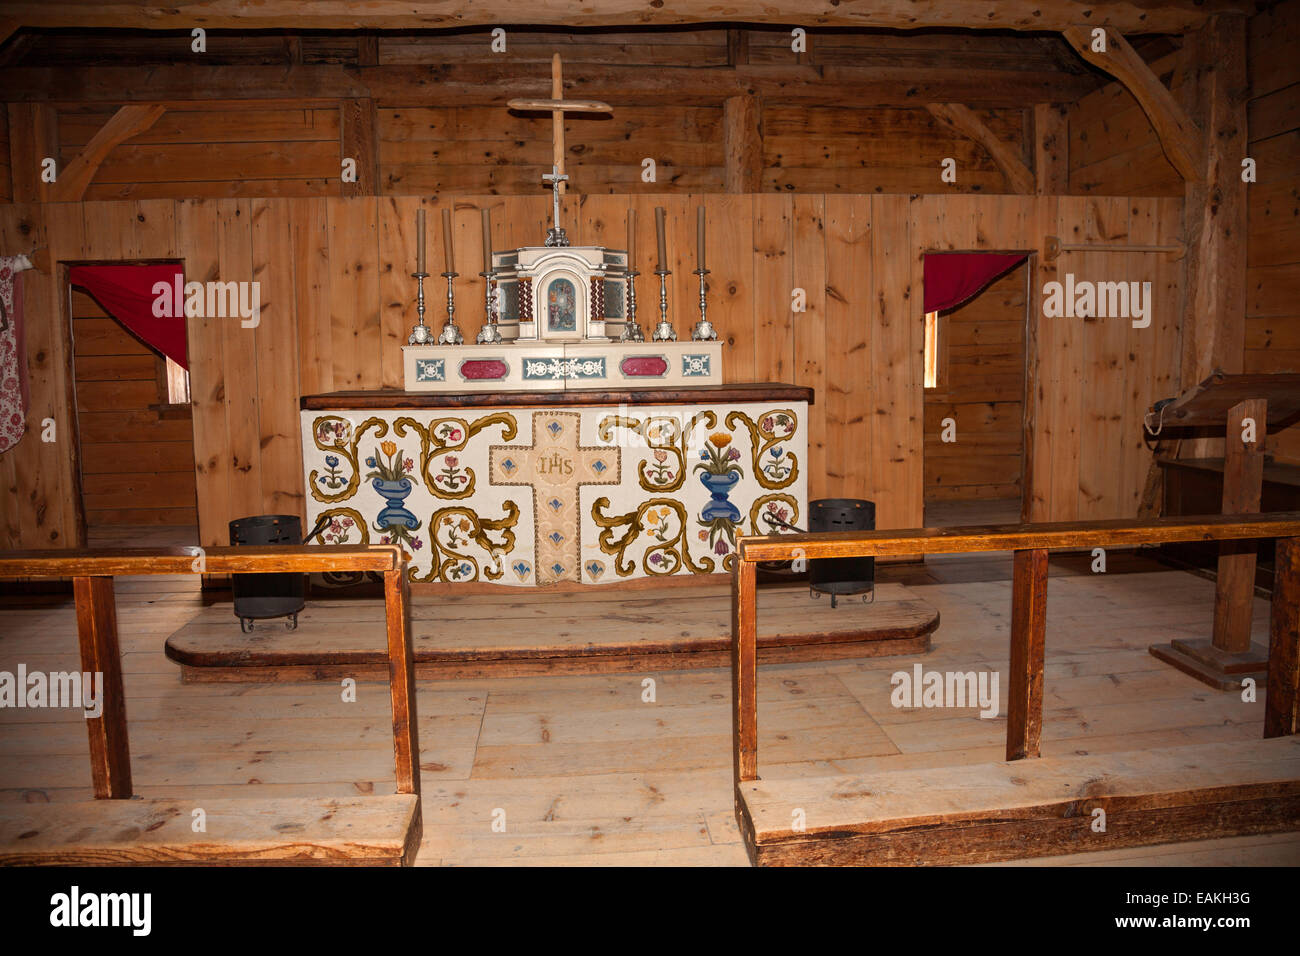 Chapel Altar at Sainte Marie among the Hurons;Original authentic Native American Indian Village in Midland;Ontario;Canada - Stock Image